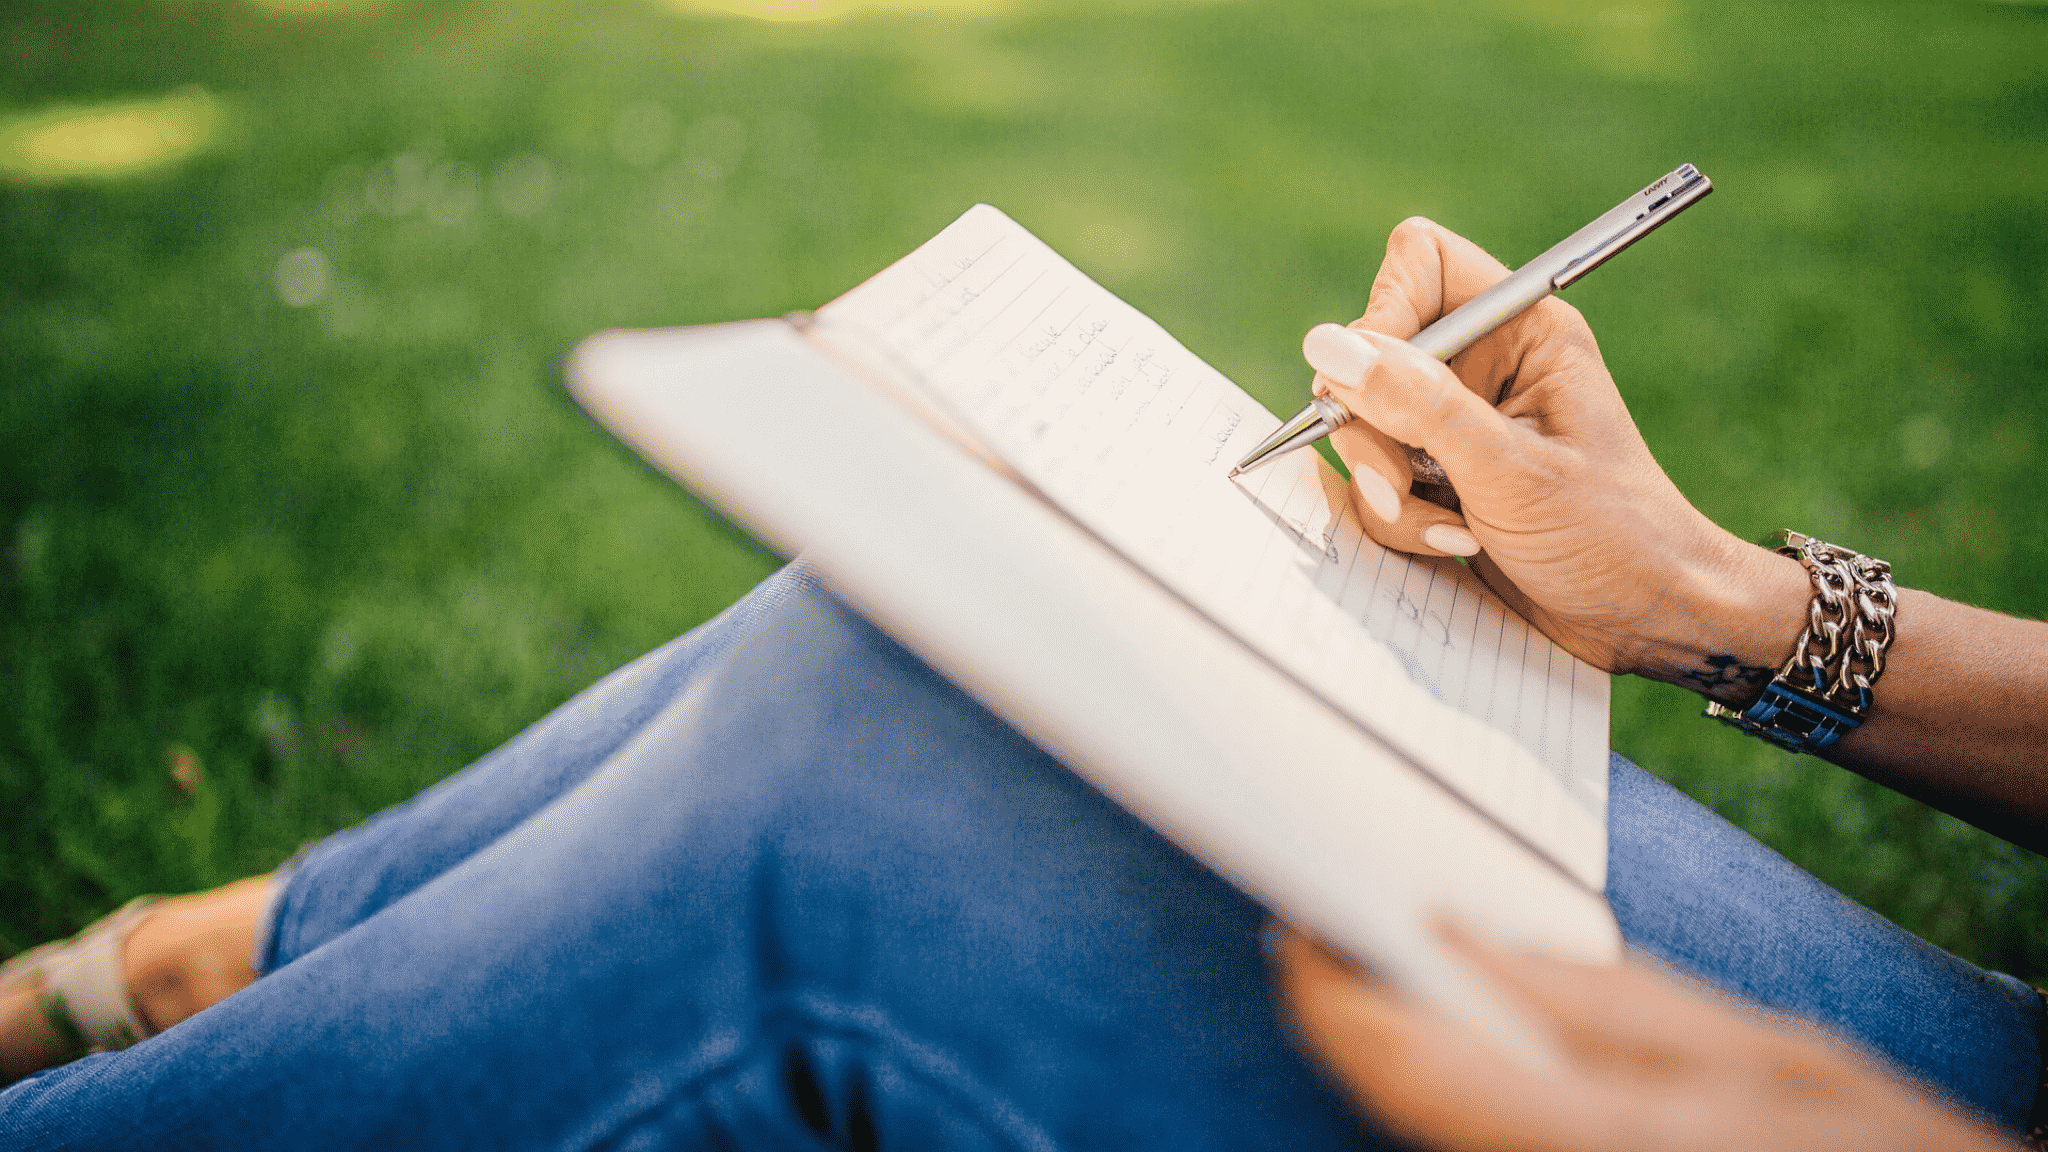 8 Reasons Why You Should Use a Journal